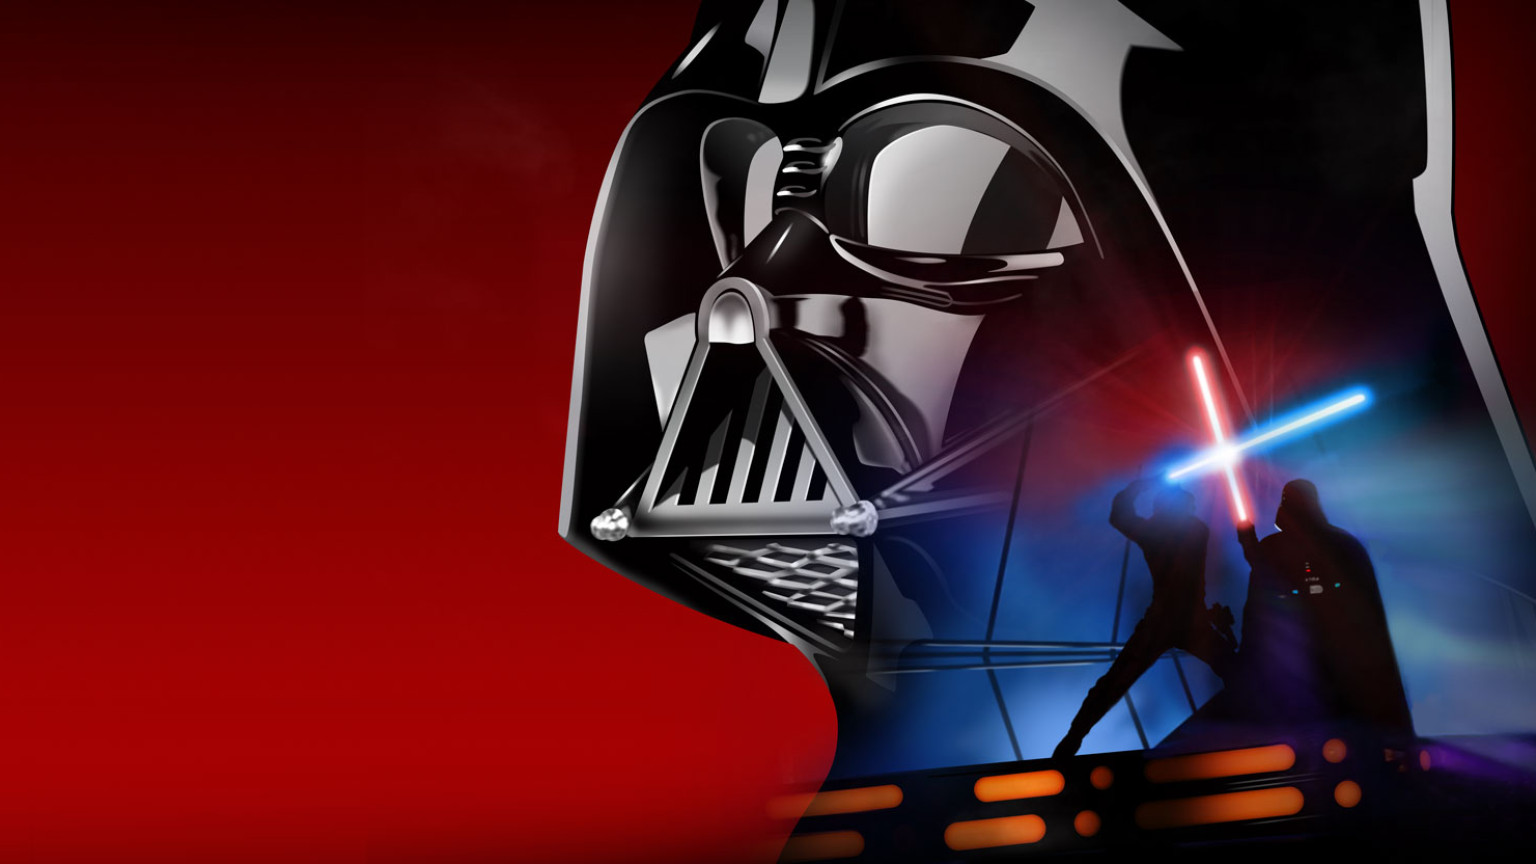 Star Wars was an amazing experience in 1977, and you can listen in